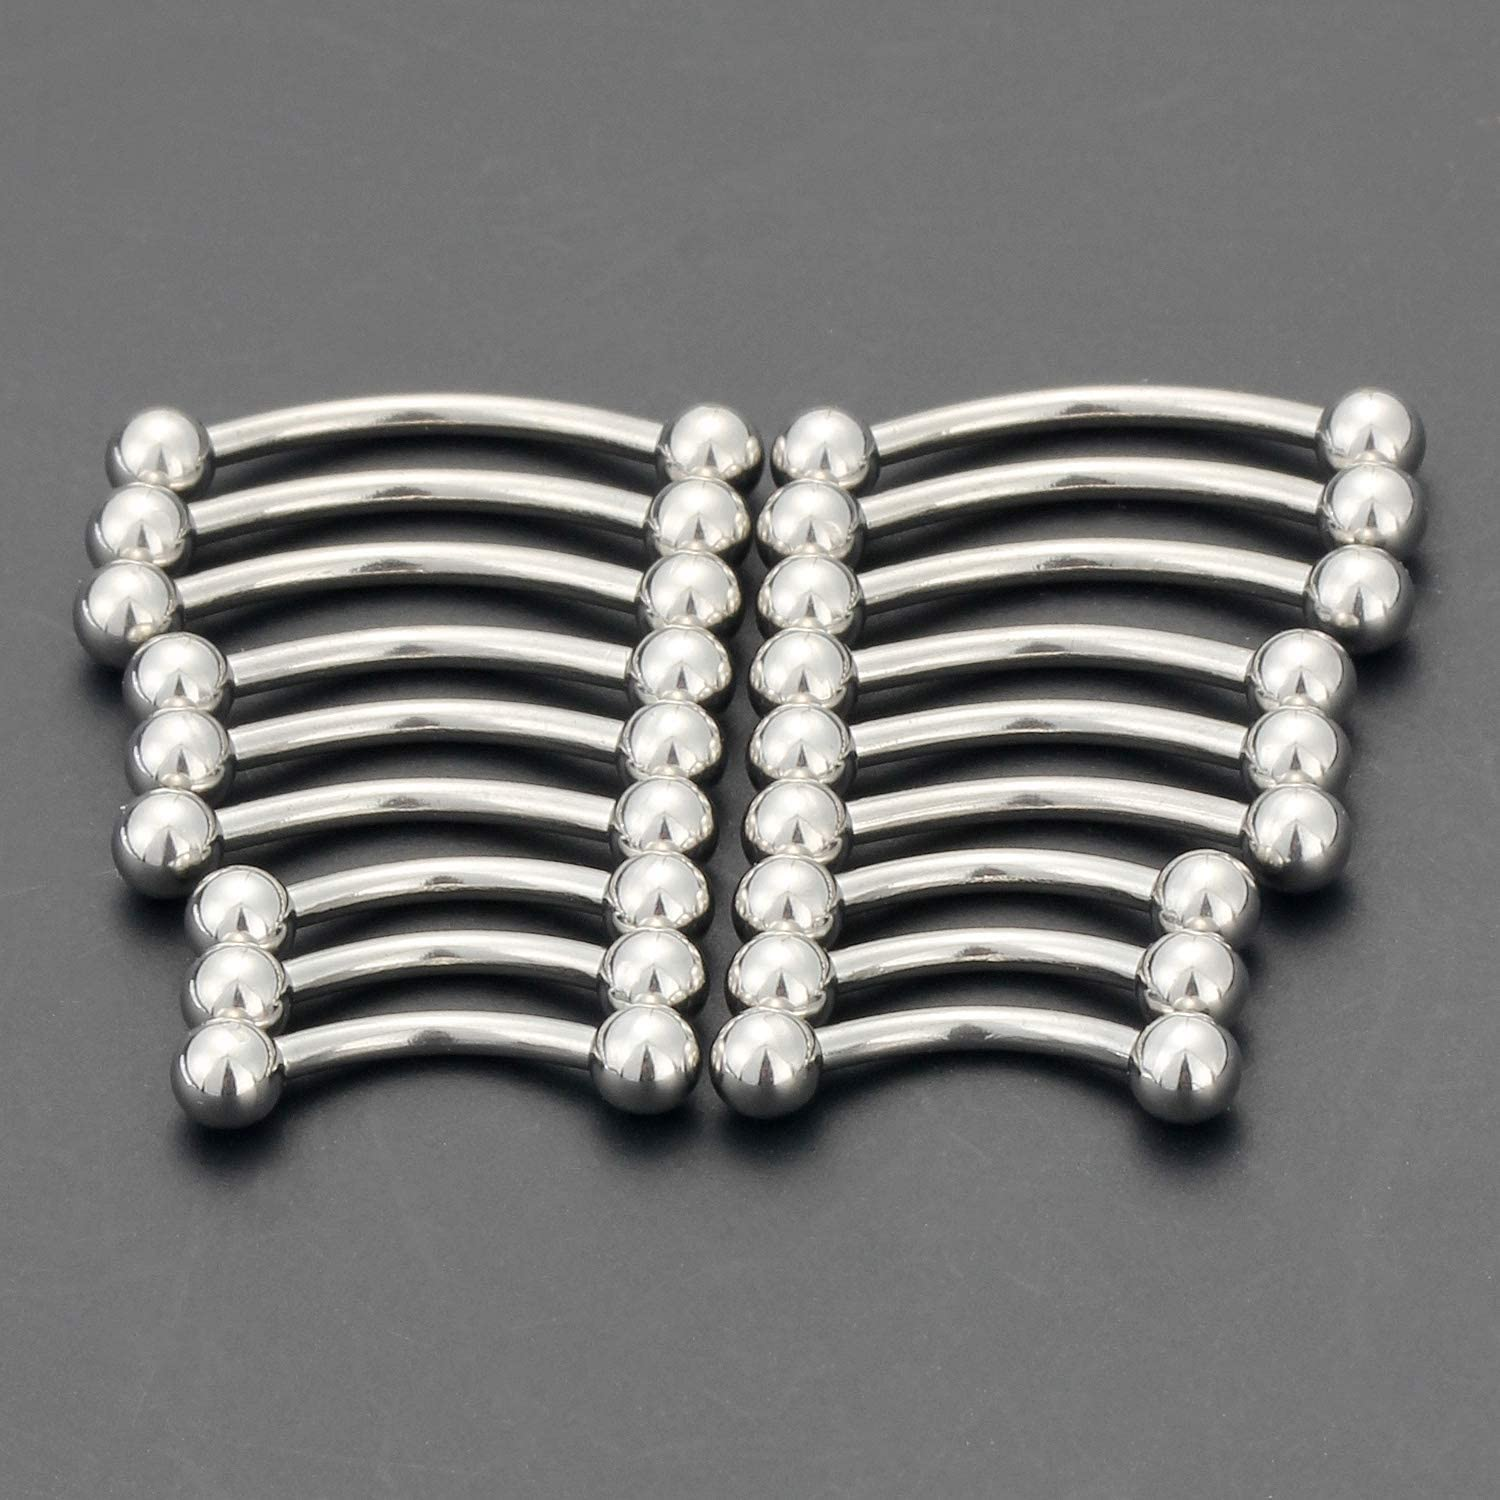 SCERRING 18-36PCS 16G Stainless Steel Eyebrow Tragus Helix Rook Daith Earrings Tongue Nipple Belly Lip Ring Barbell Body Piercing Jewelry 6-16mm